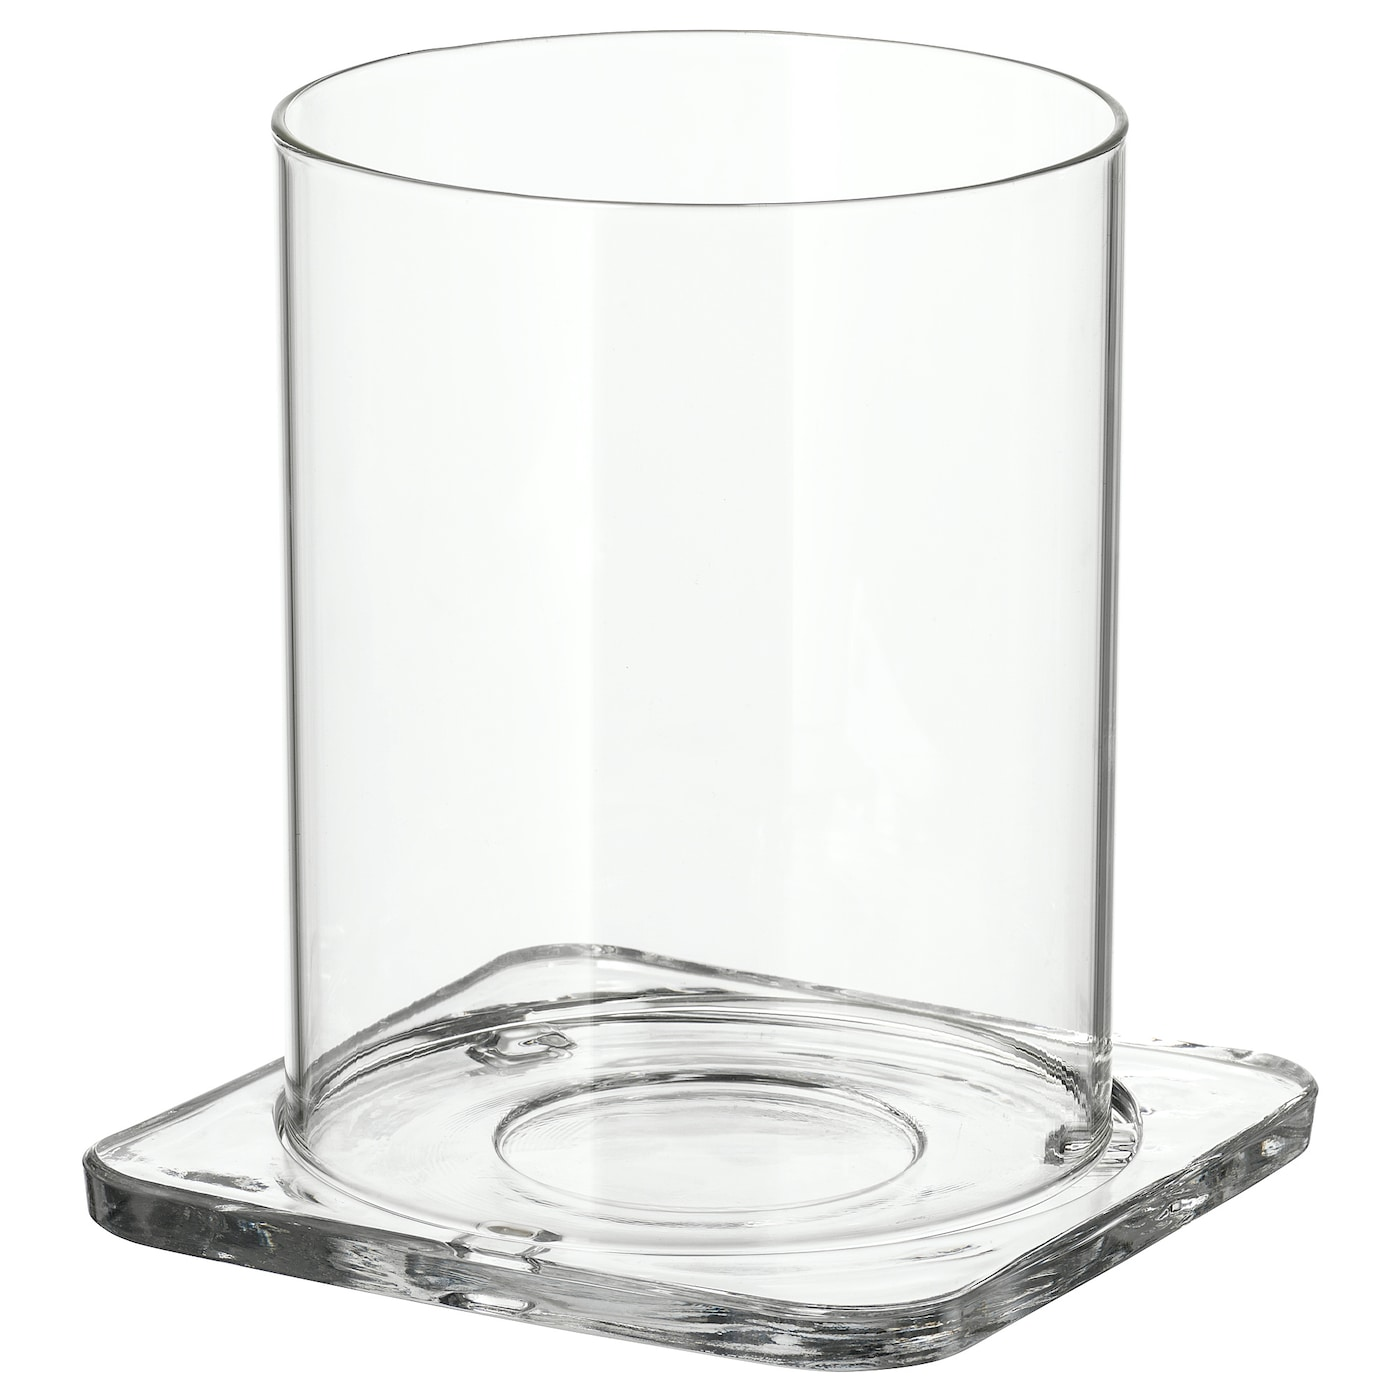 IKEA GLASIG lantern The clear glass reflects and enhances the warm glow of the candle-flame.